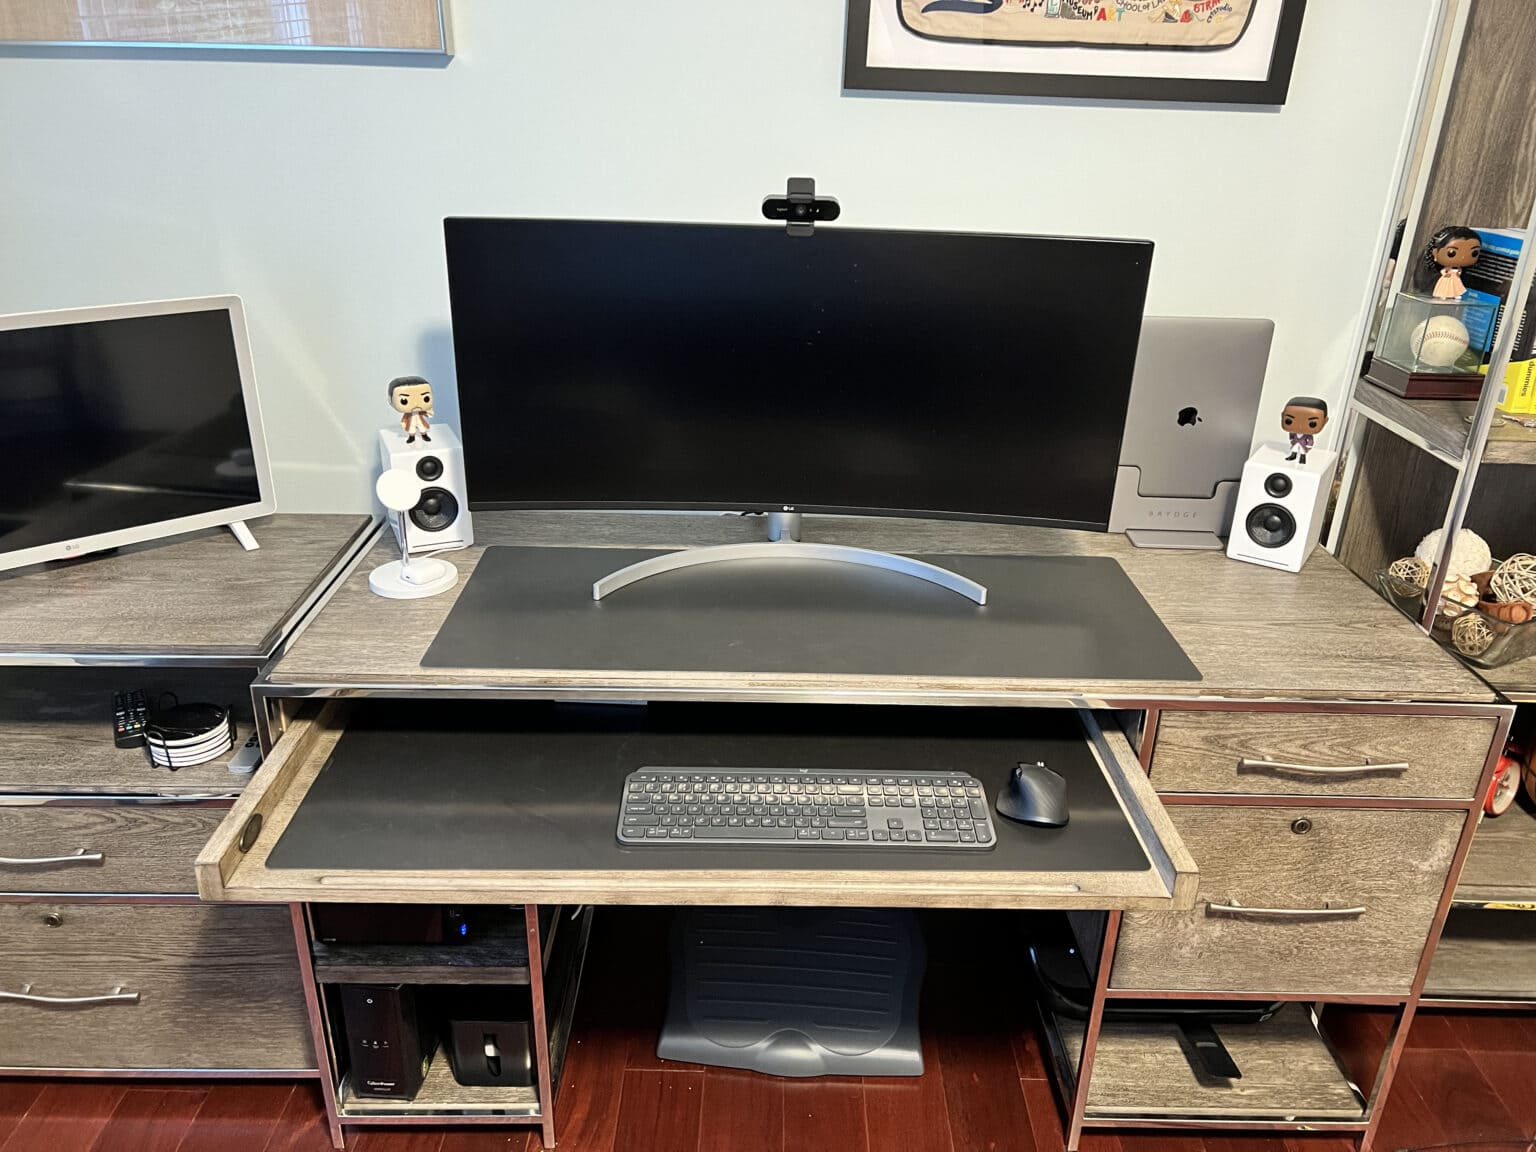 Marc Drucker's WFH setup saves some cable clutter by using the monitor as a USB hub.